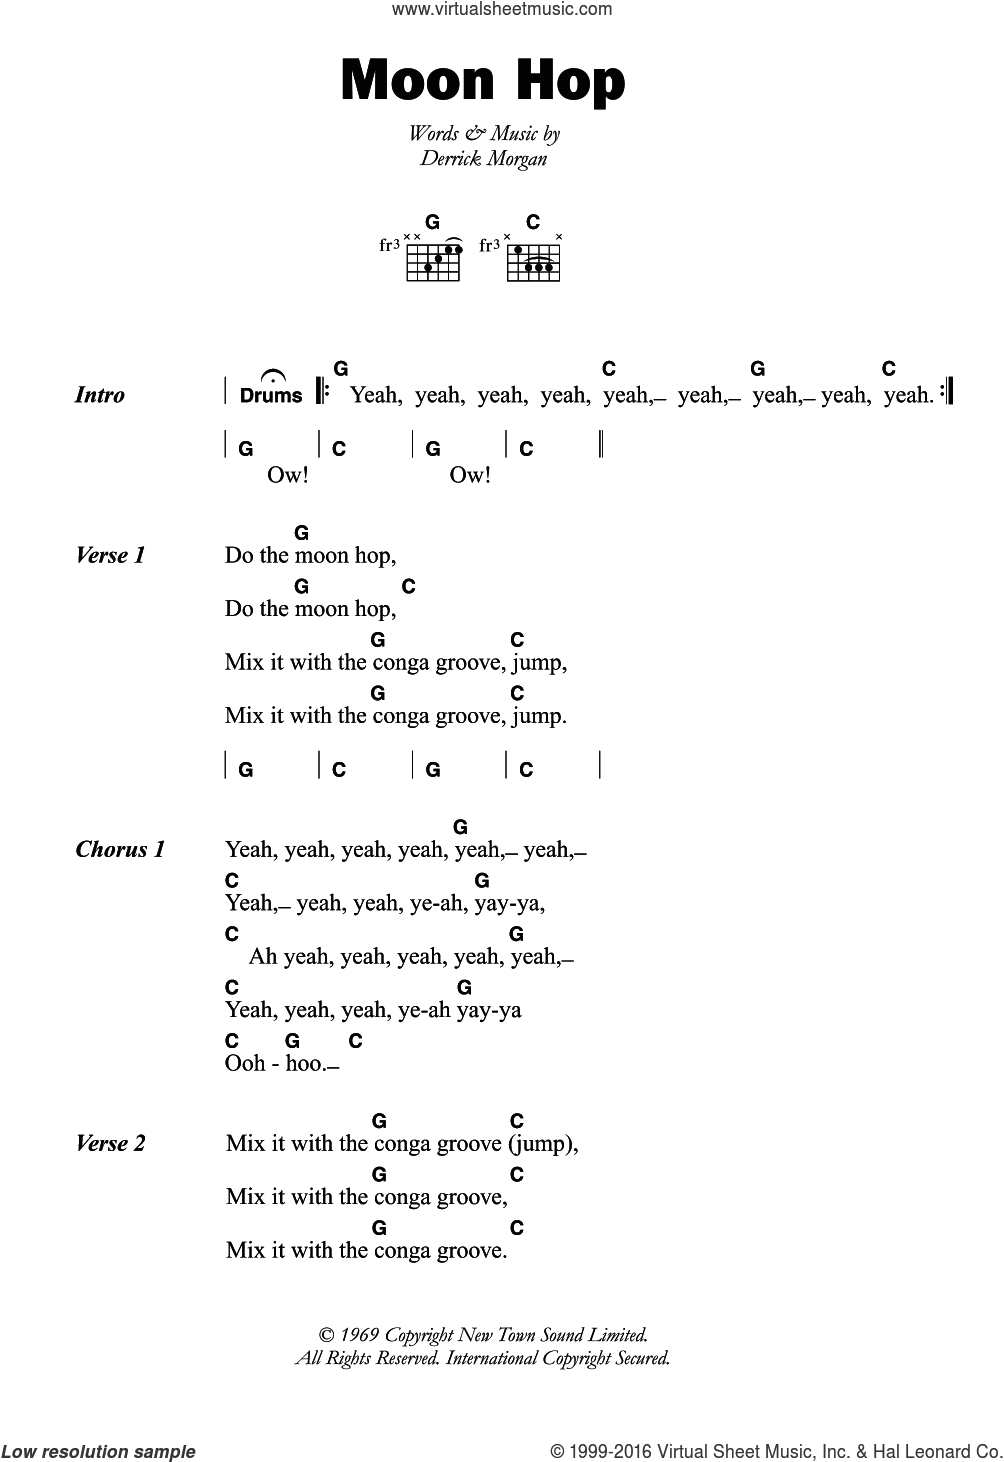 Moon Hop sheet music for guitar (chords) by Derrick Morgan, intermediate. Score Image Preview.